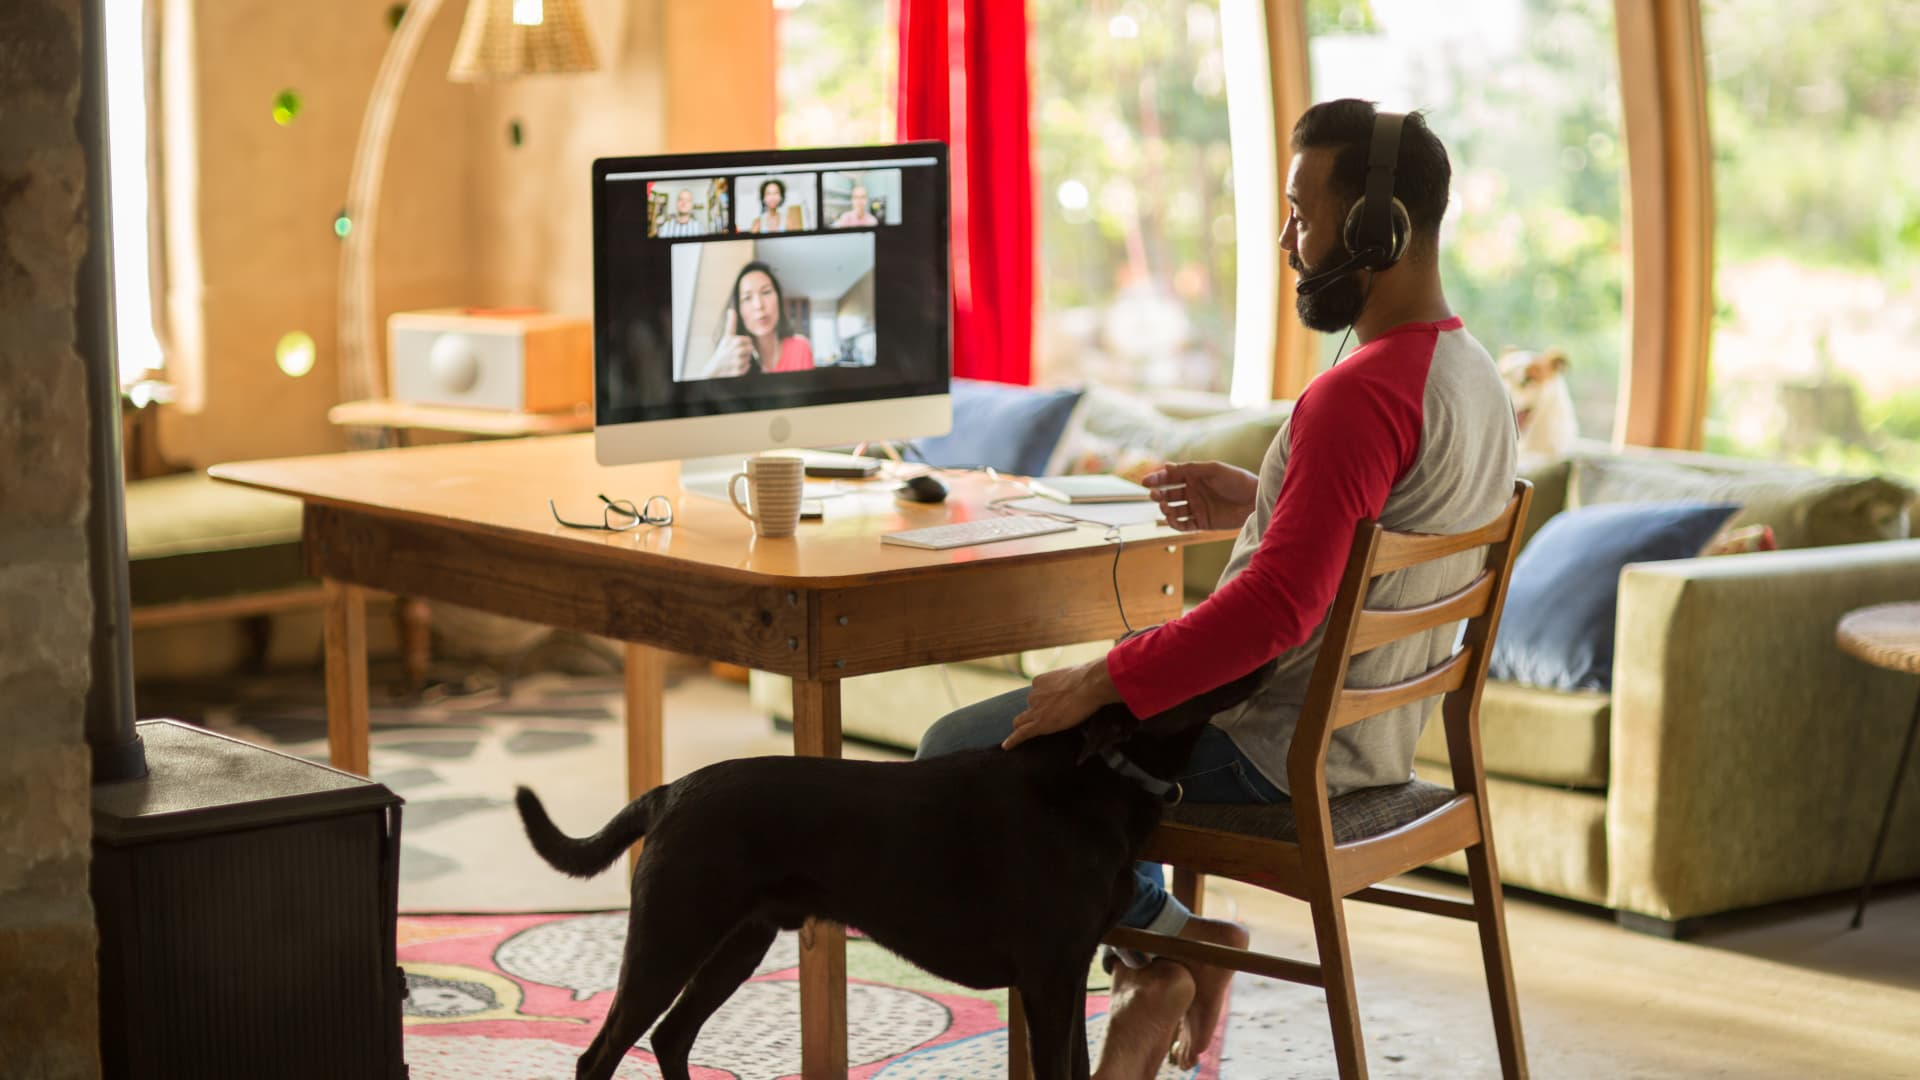 Use video chat to ask for an annual period of remote work to gauge your employer's body language, advises career coach Amanda Augustine.